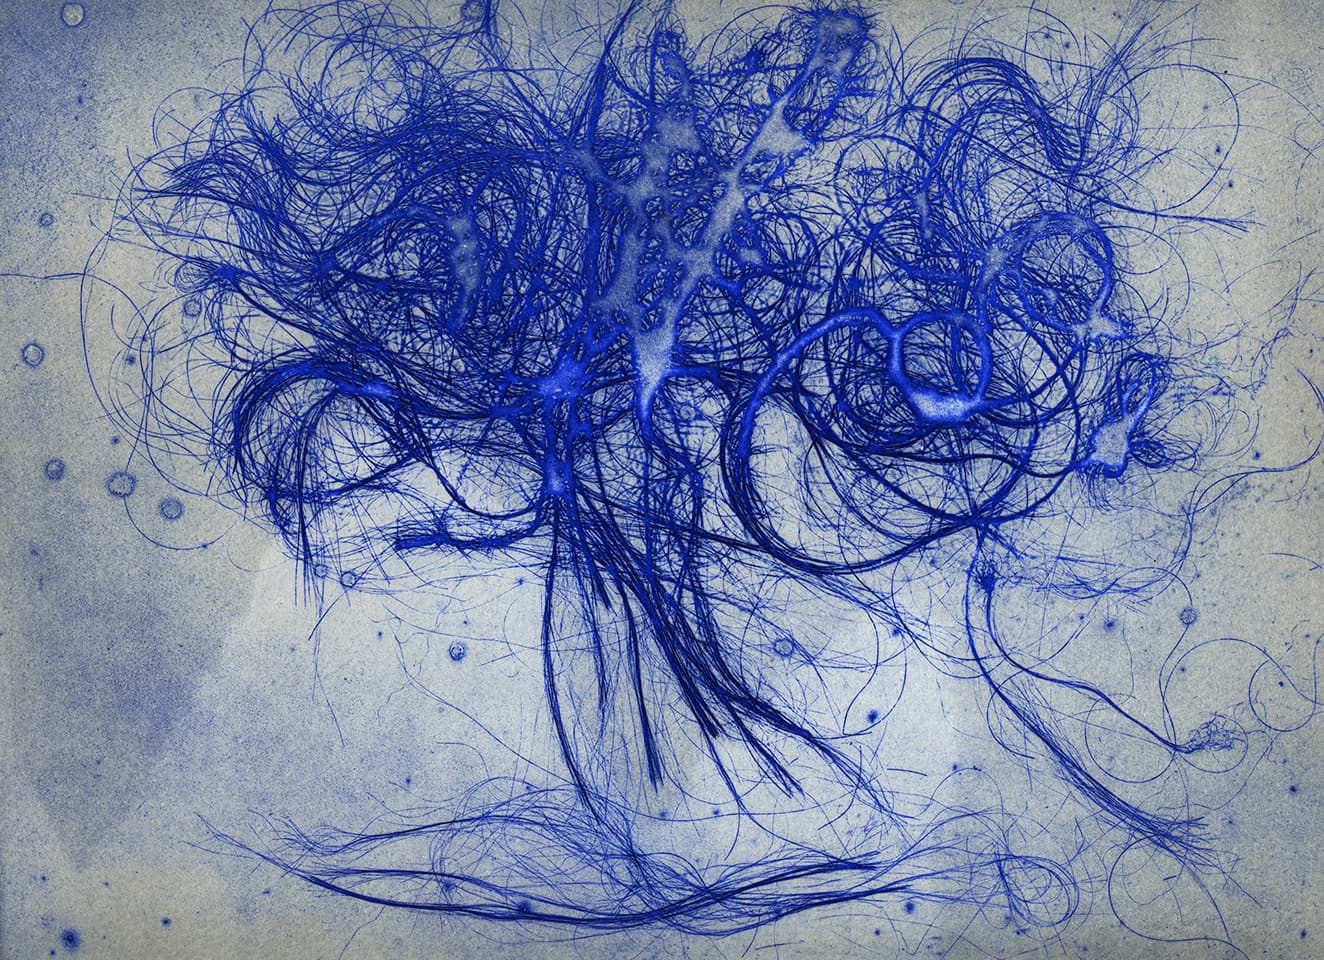 <strong>The Entangled Self 4</strong>, Susan Aldworth, etching, 25 x 31 cms, 2014.